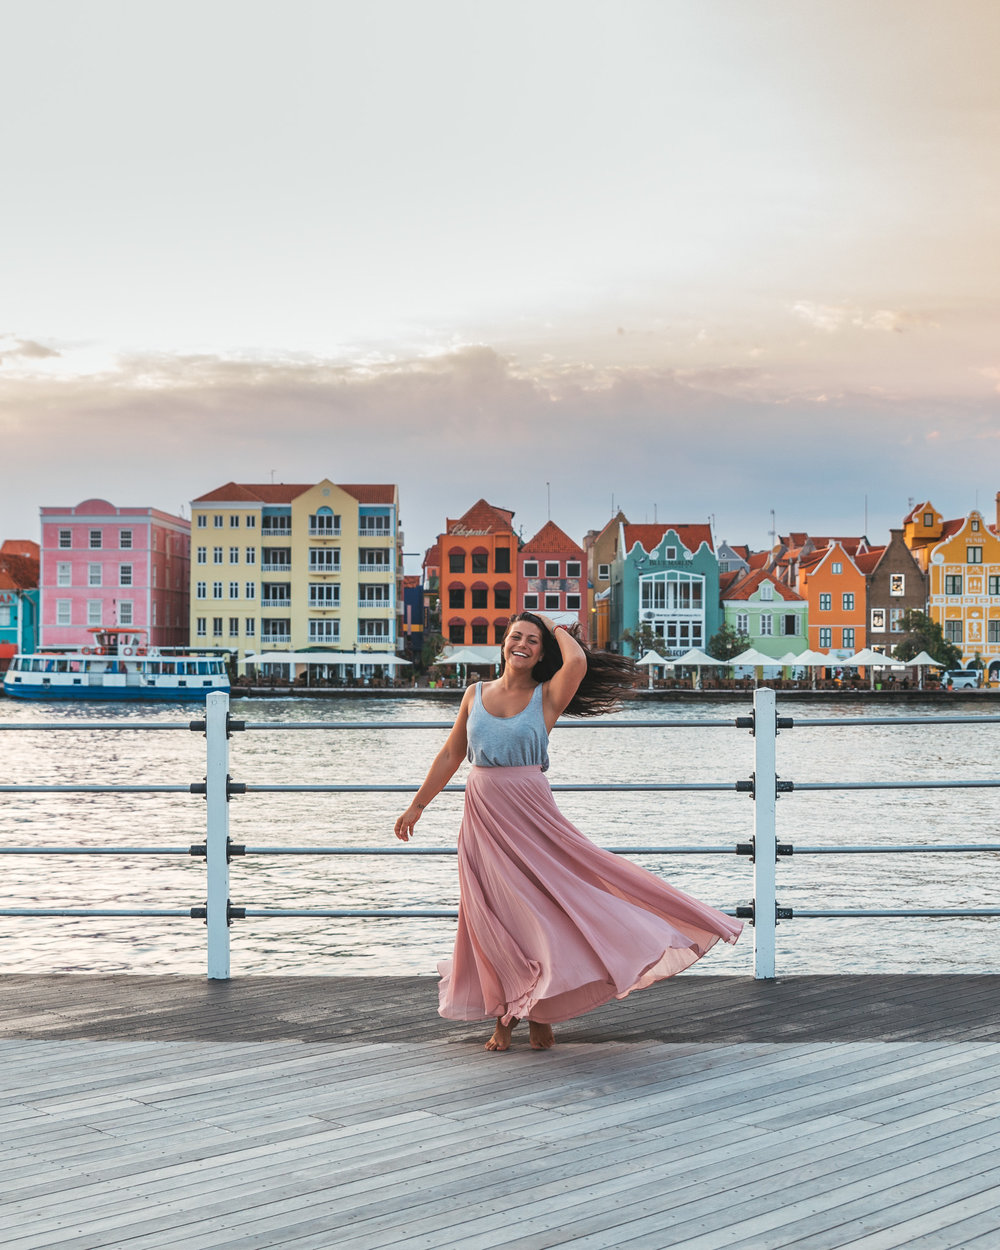 The Queen Emma Bridge of Willemstad, Curaçao // 20 Photos to Show You Why Curaçao Needs to Be On Your Travel Radar // www.readysetjetset.net #readysetjetset #curacao #caribbean #beach #ocean #paradise #travel